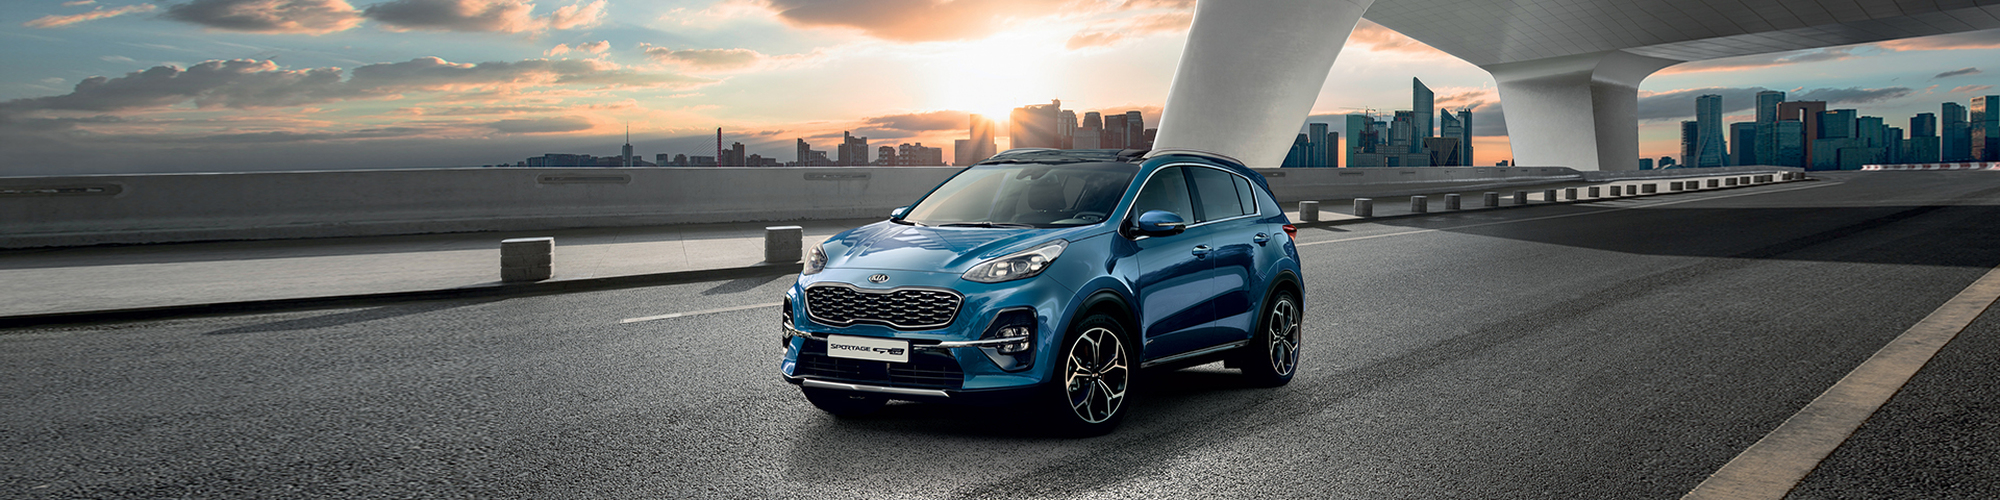 SPORTAGE 1.6 DS Business Class